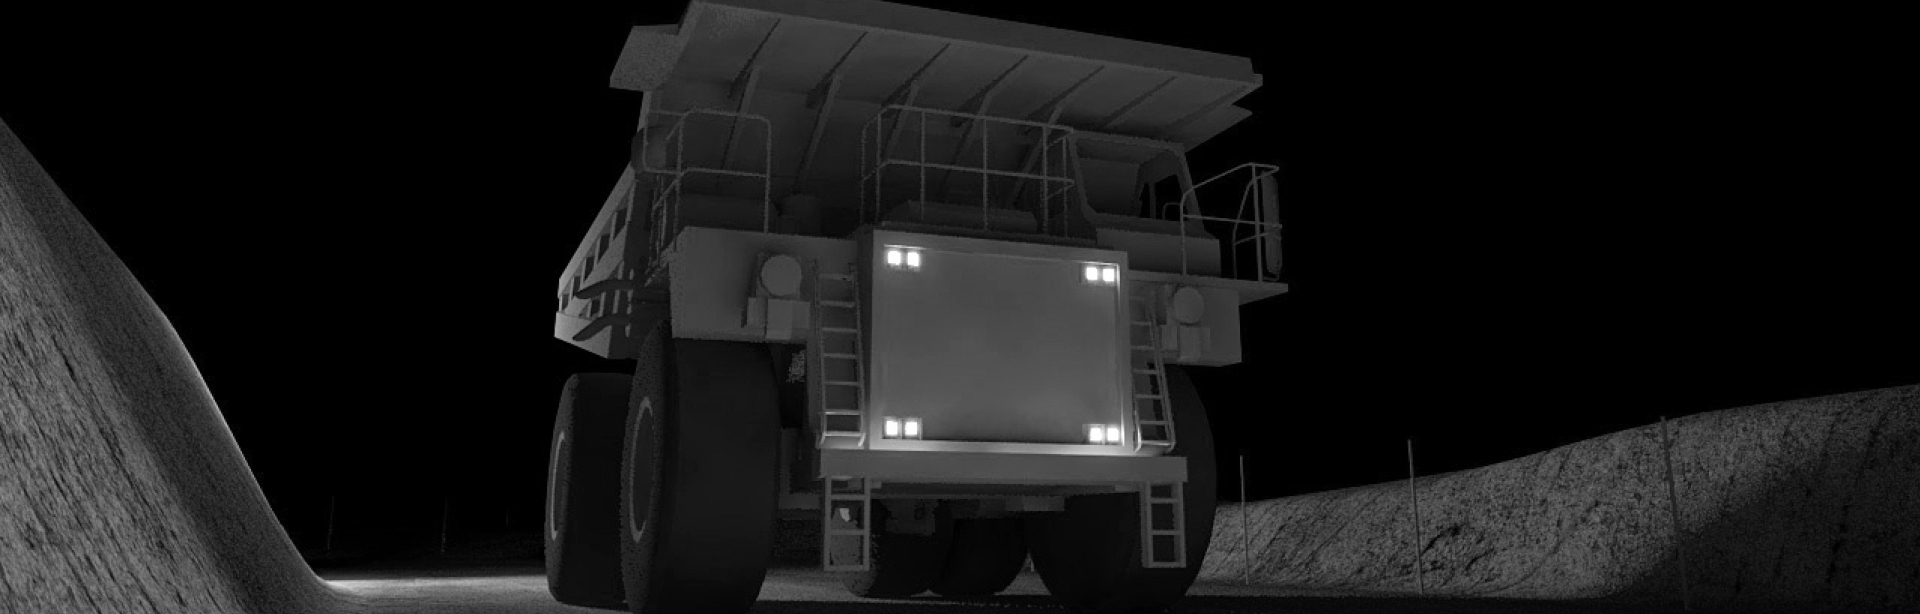 This Lighting Design Simulation Report and explore how the CP9 LED Floodlight transforms the light output of a Caterpillar 789C mining truck.